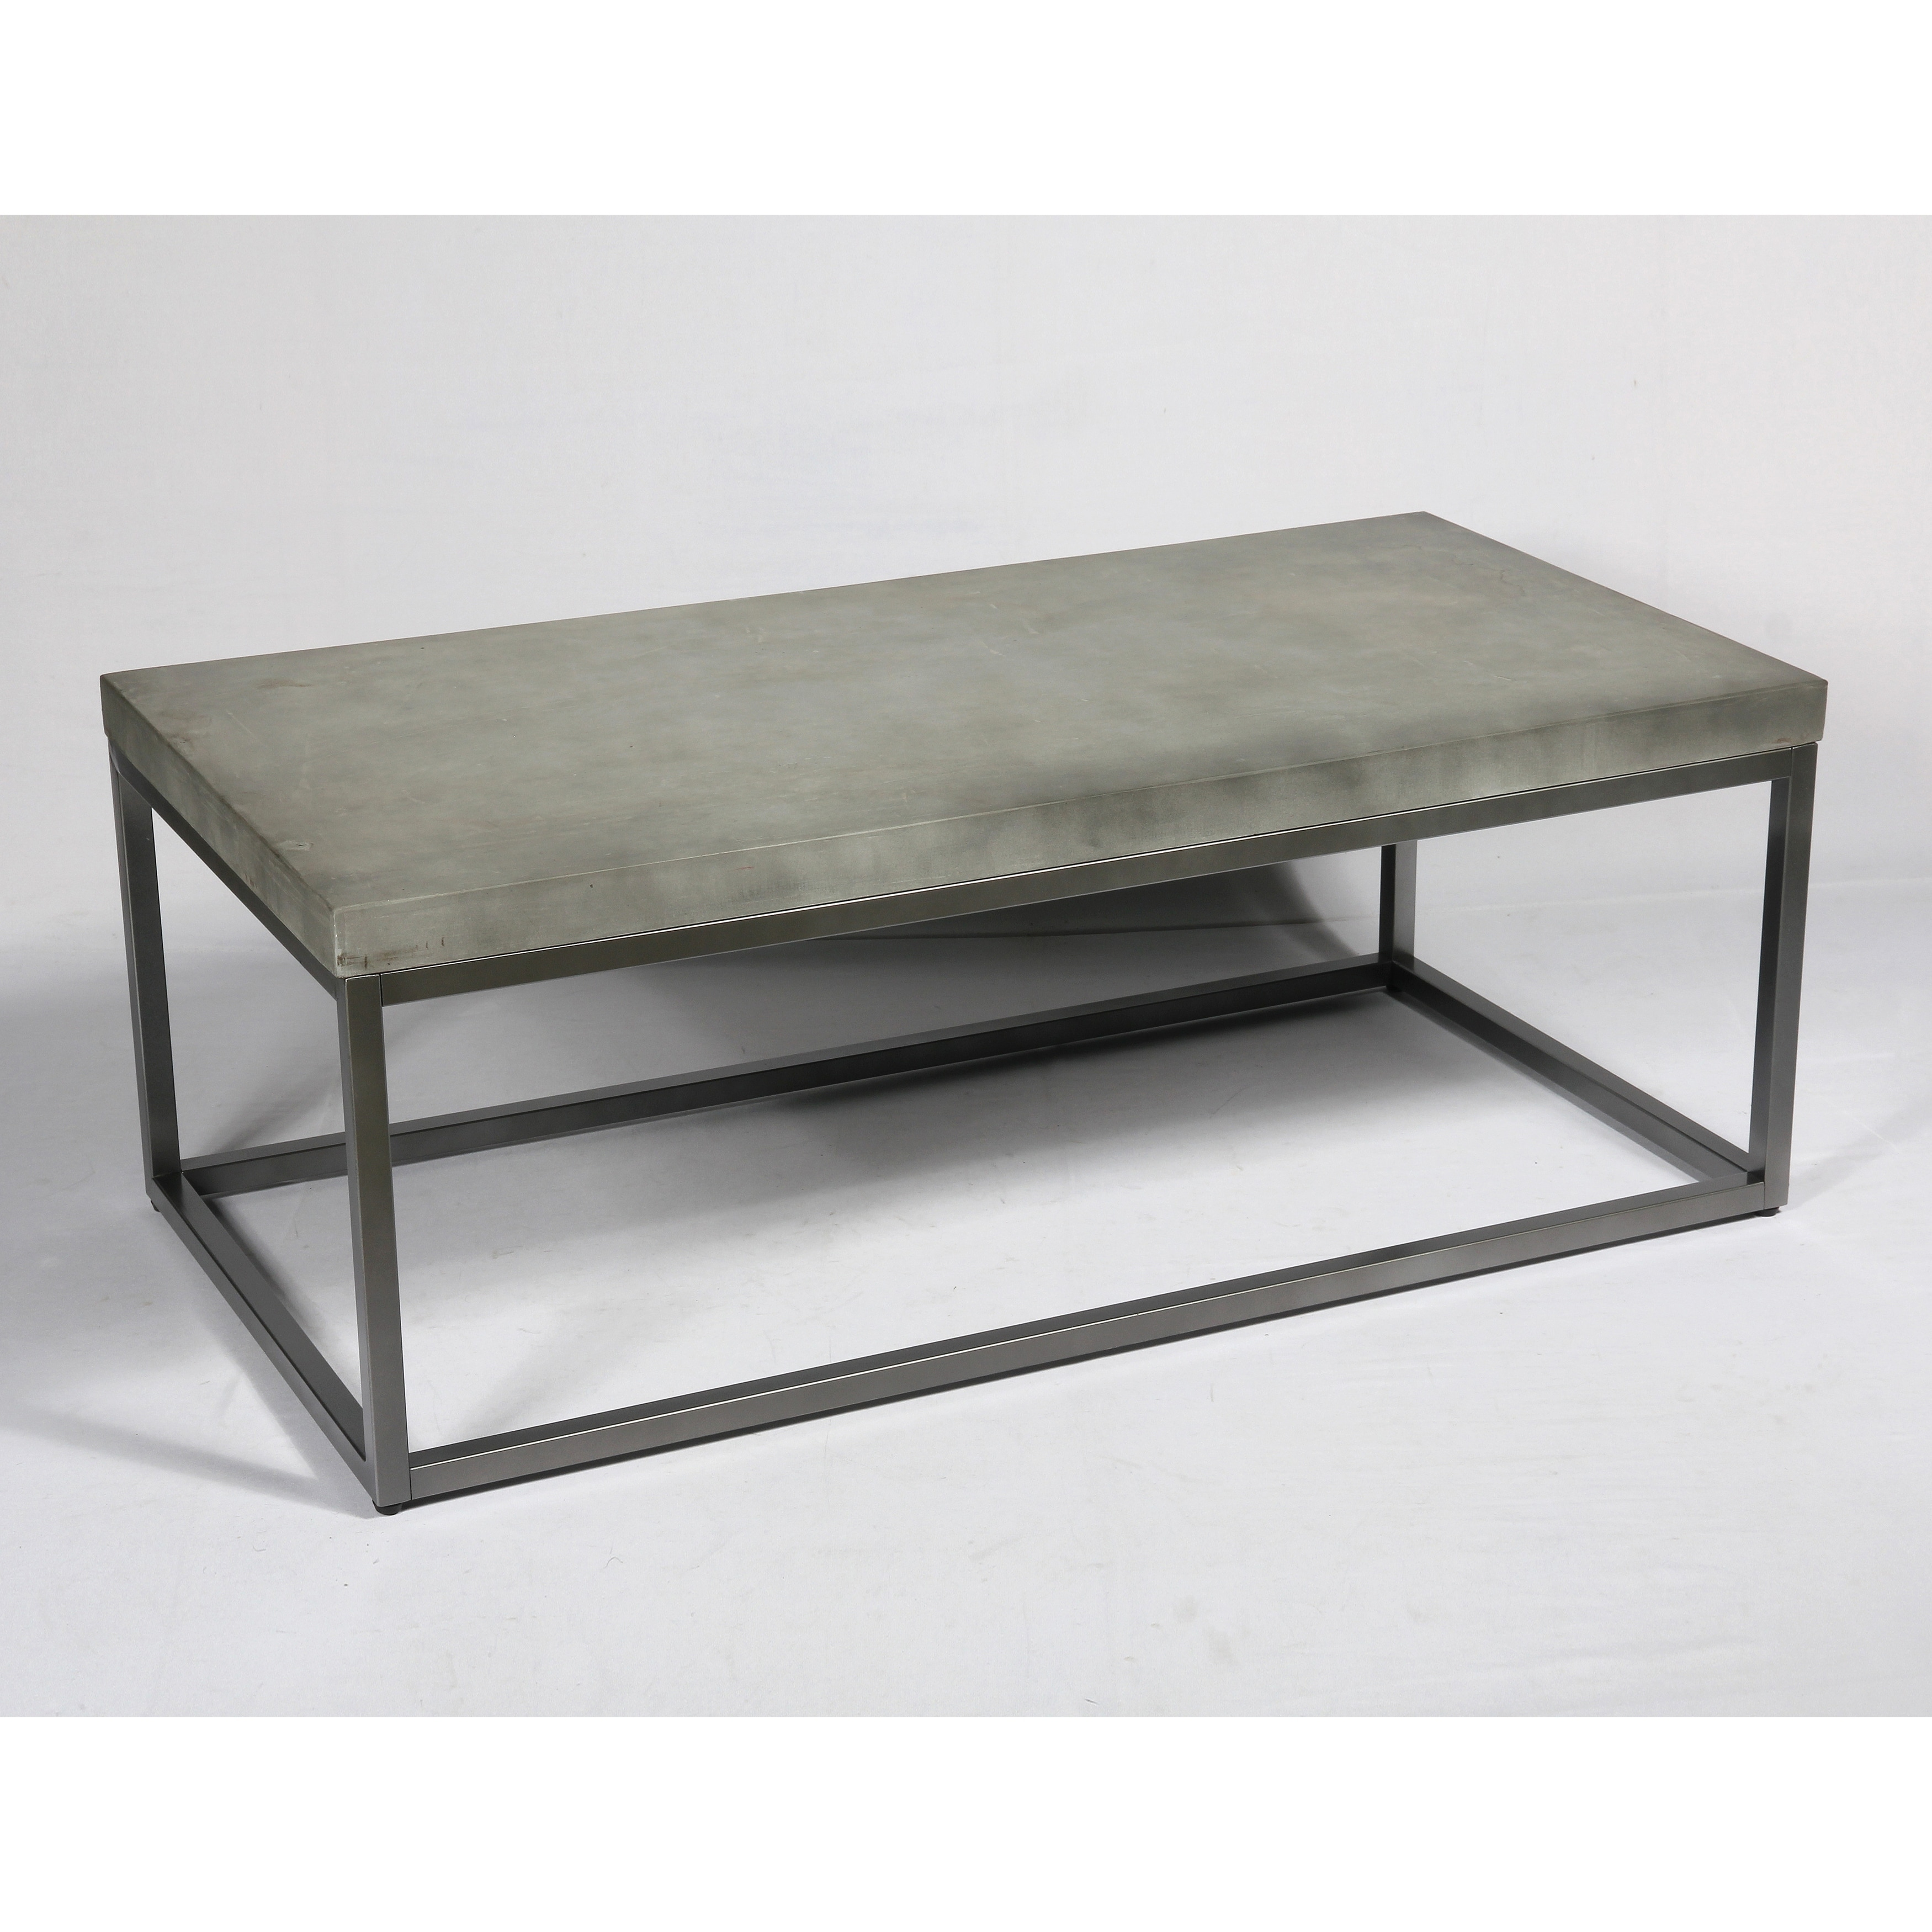 Amazing Emerald Home Onyx Concrete Finish Cocktail Table Cjindustries Chair Design For Home Cjindustriesco